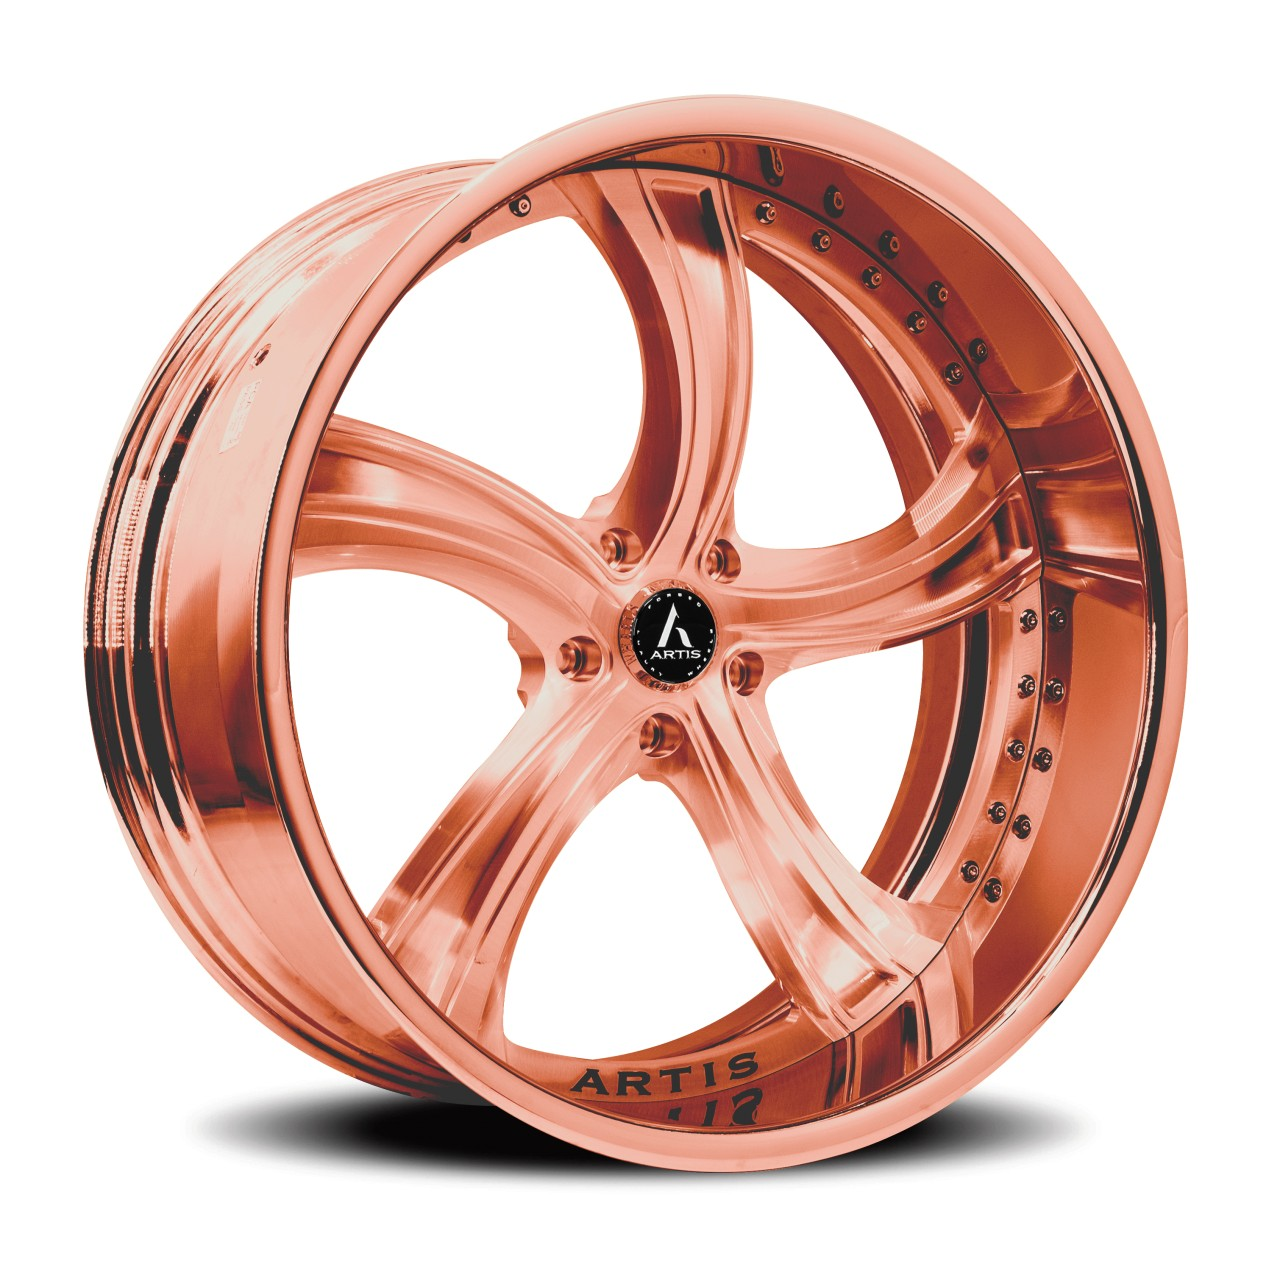 Artis Forged Kokomo wheel with Rose Gold finish